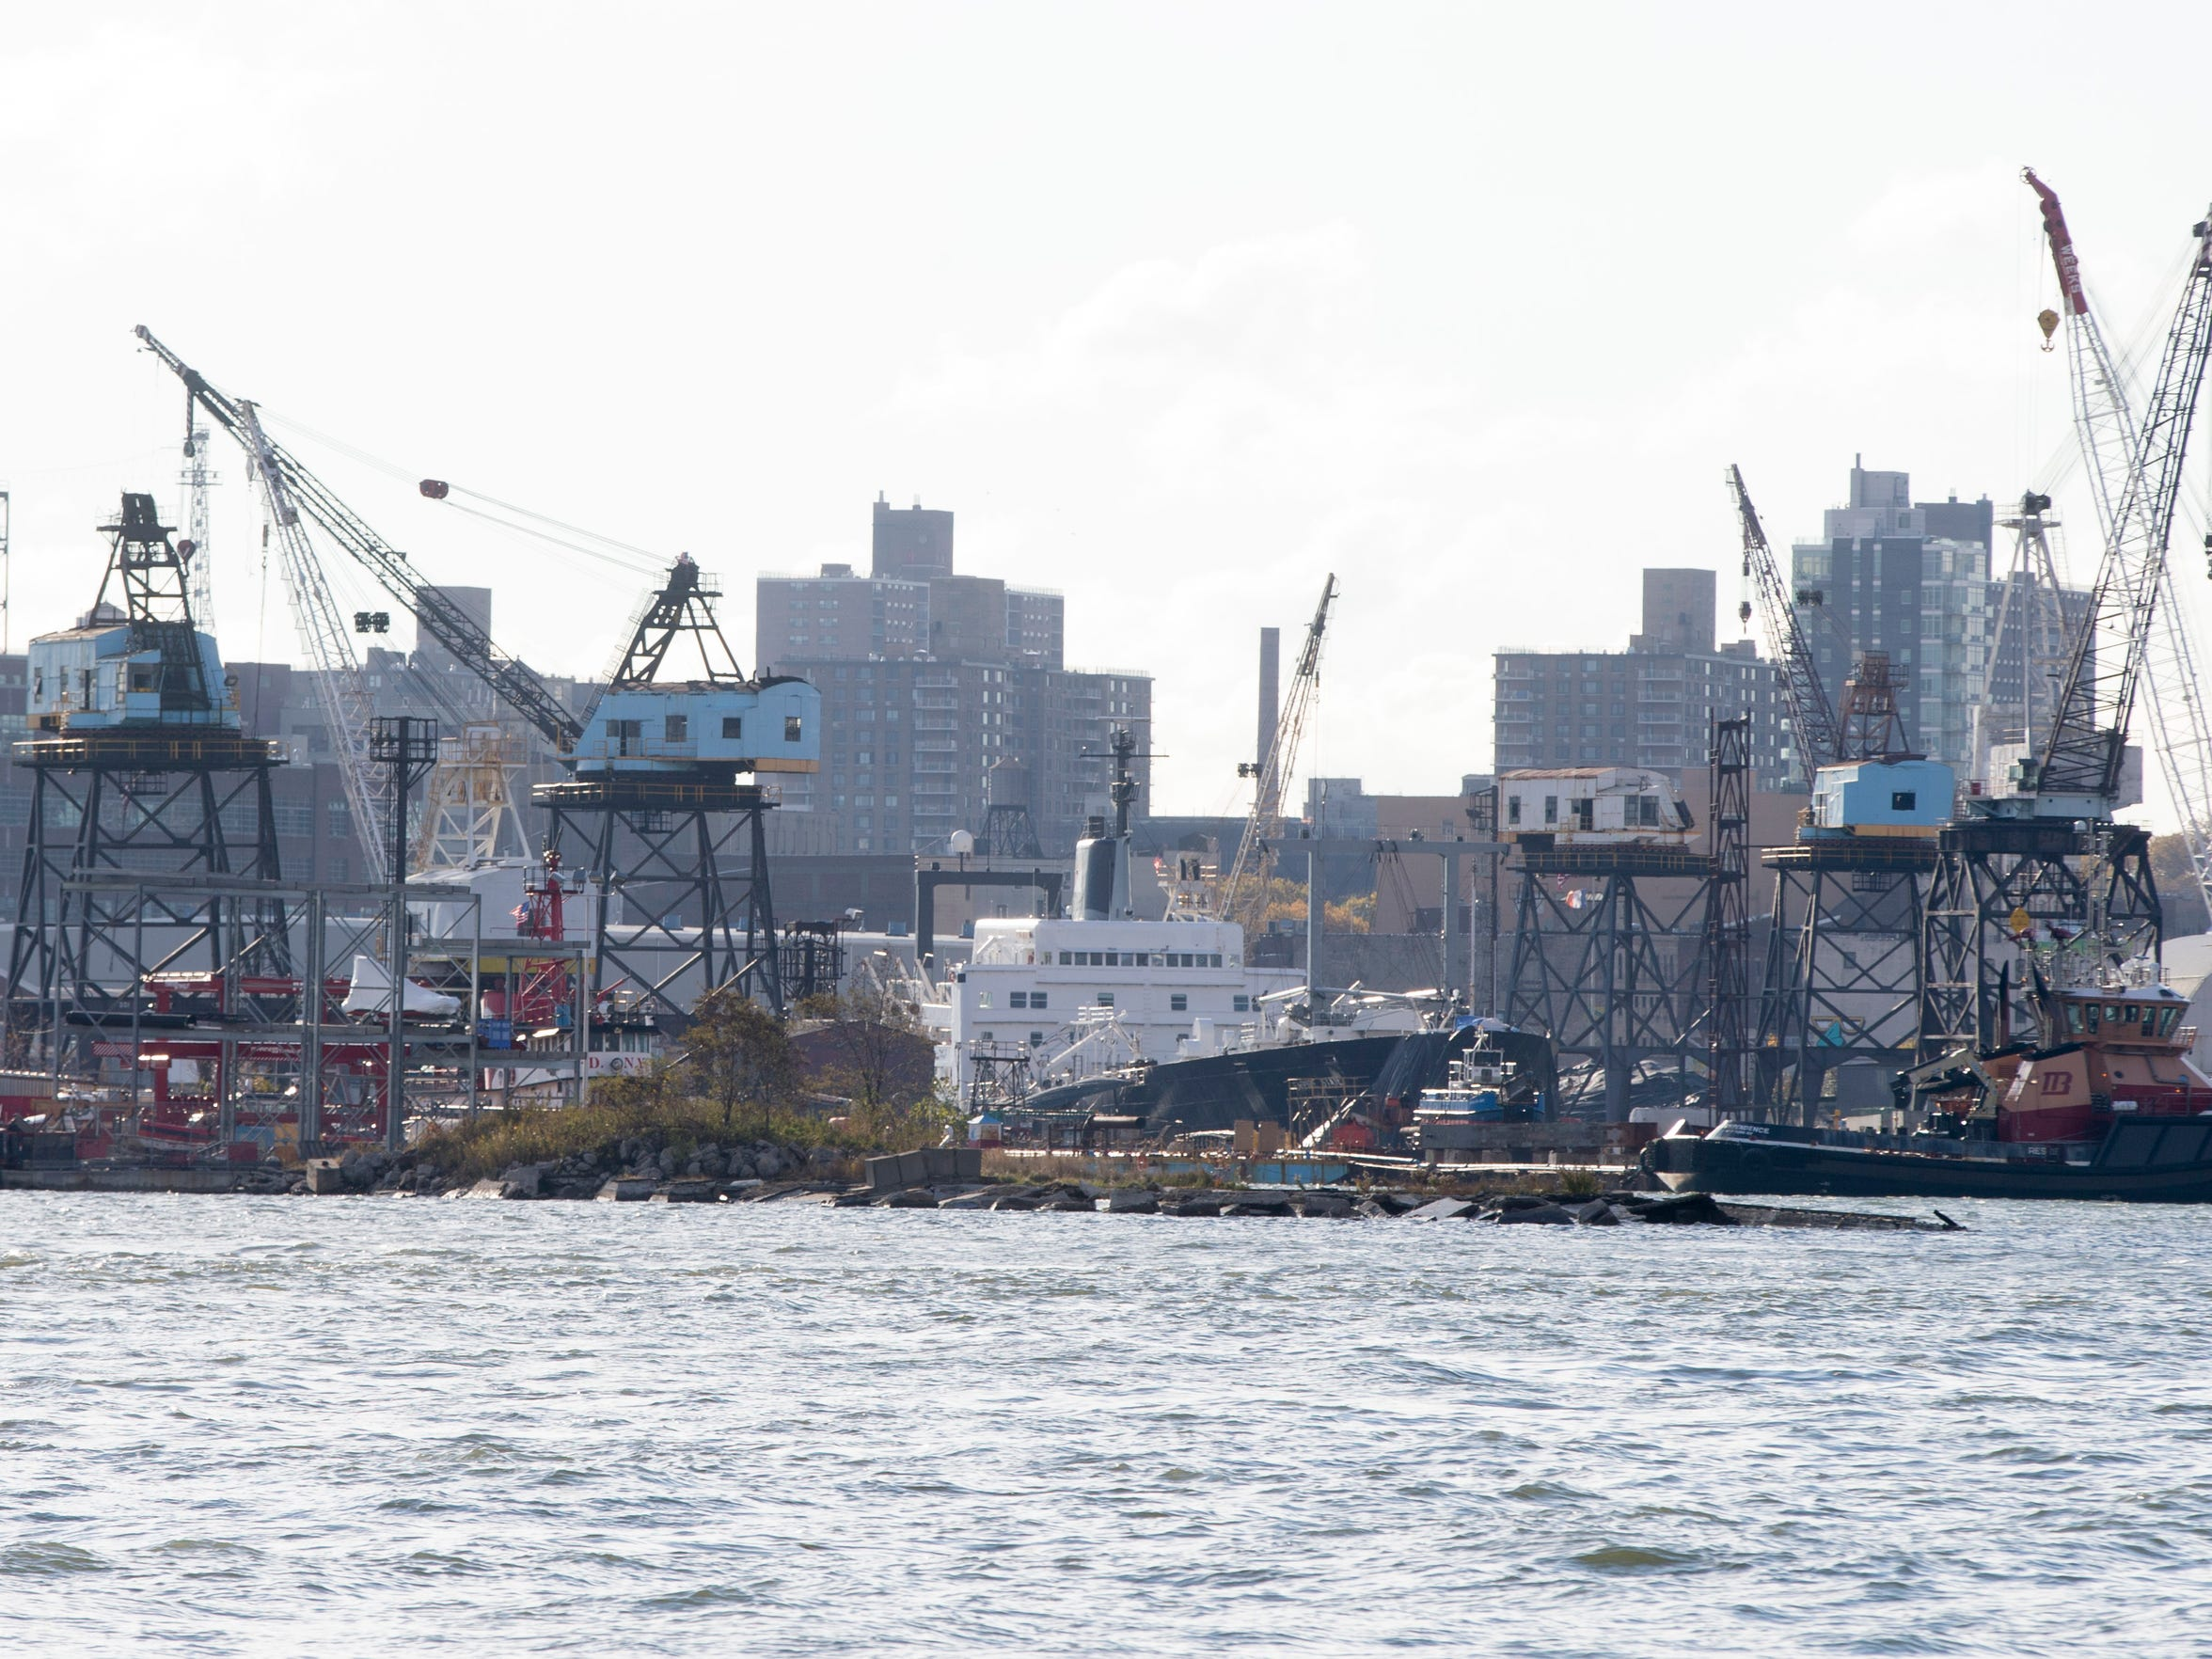 The site of the Brooklyn Navy Yard, in 2014.